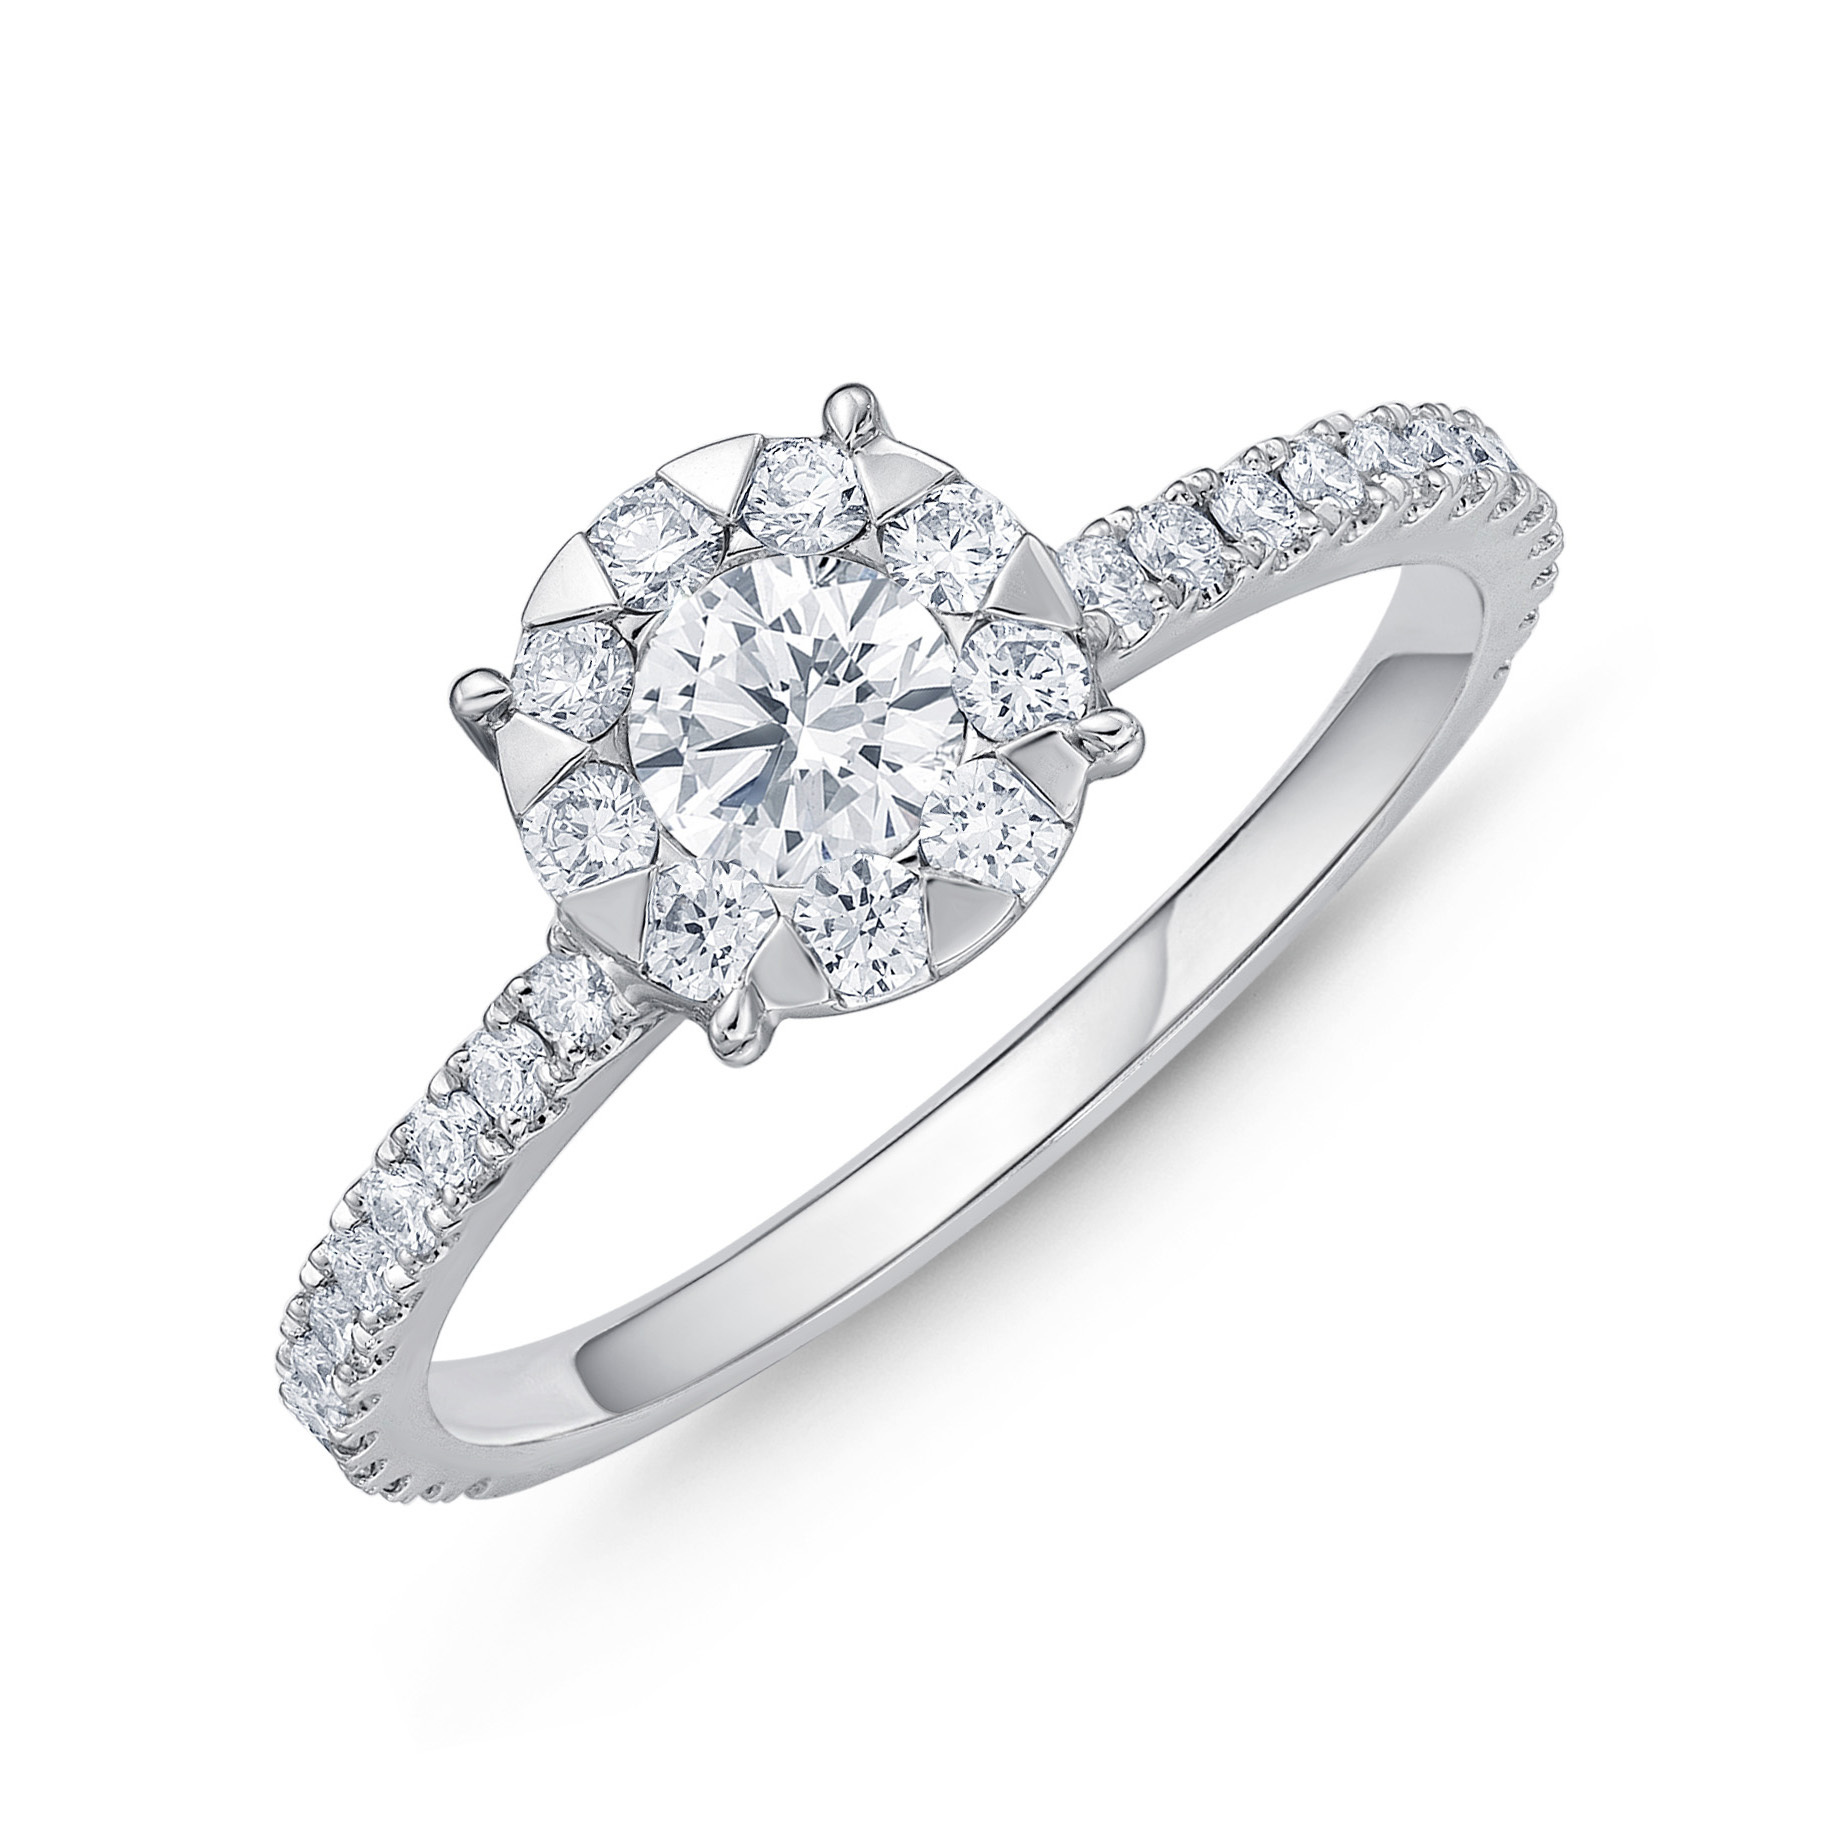 Memoire 18ct White Gold 0.70 Carat Diamond Bouquet Halo Solitaire Ring